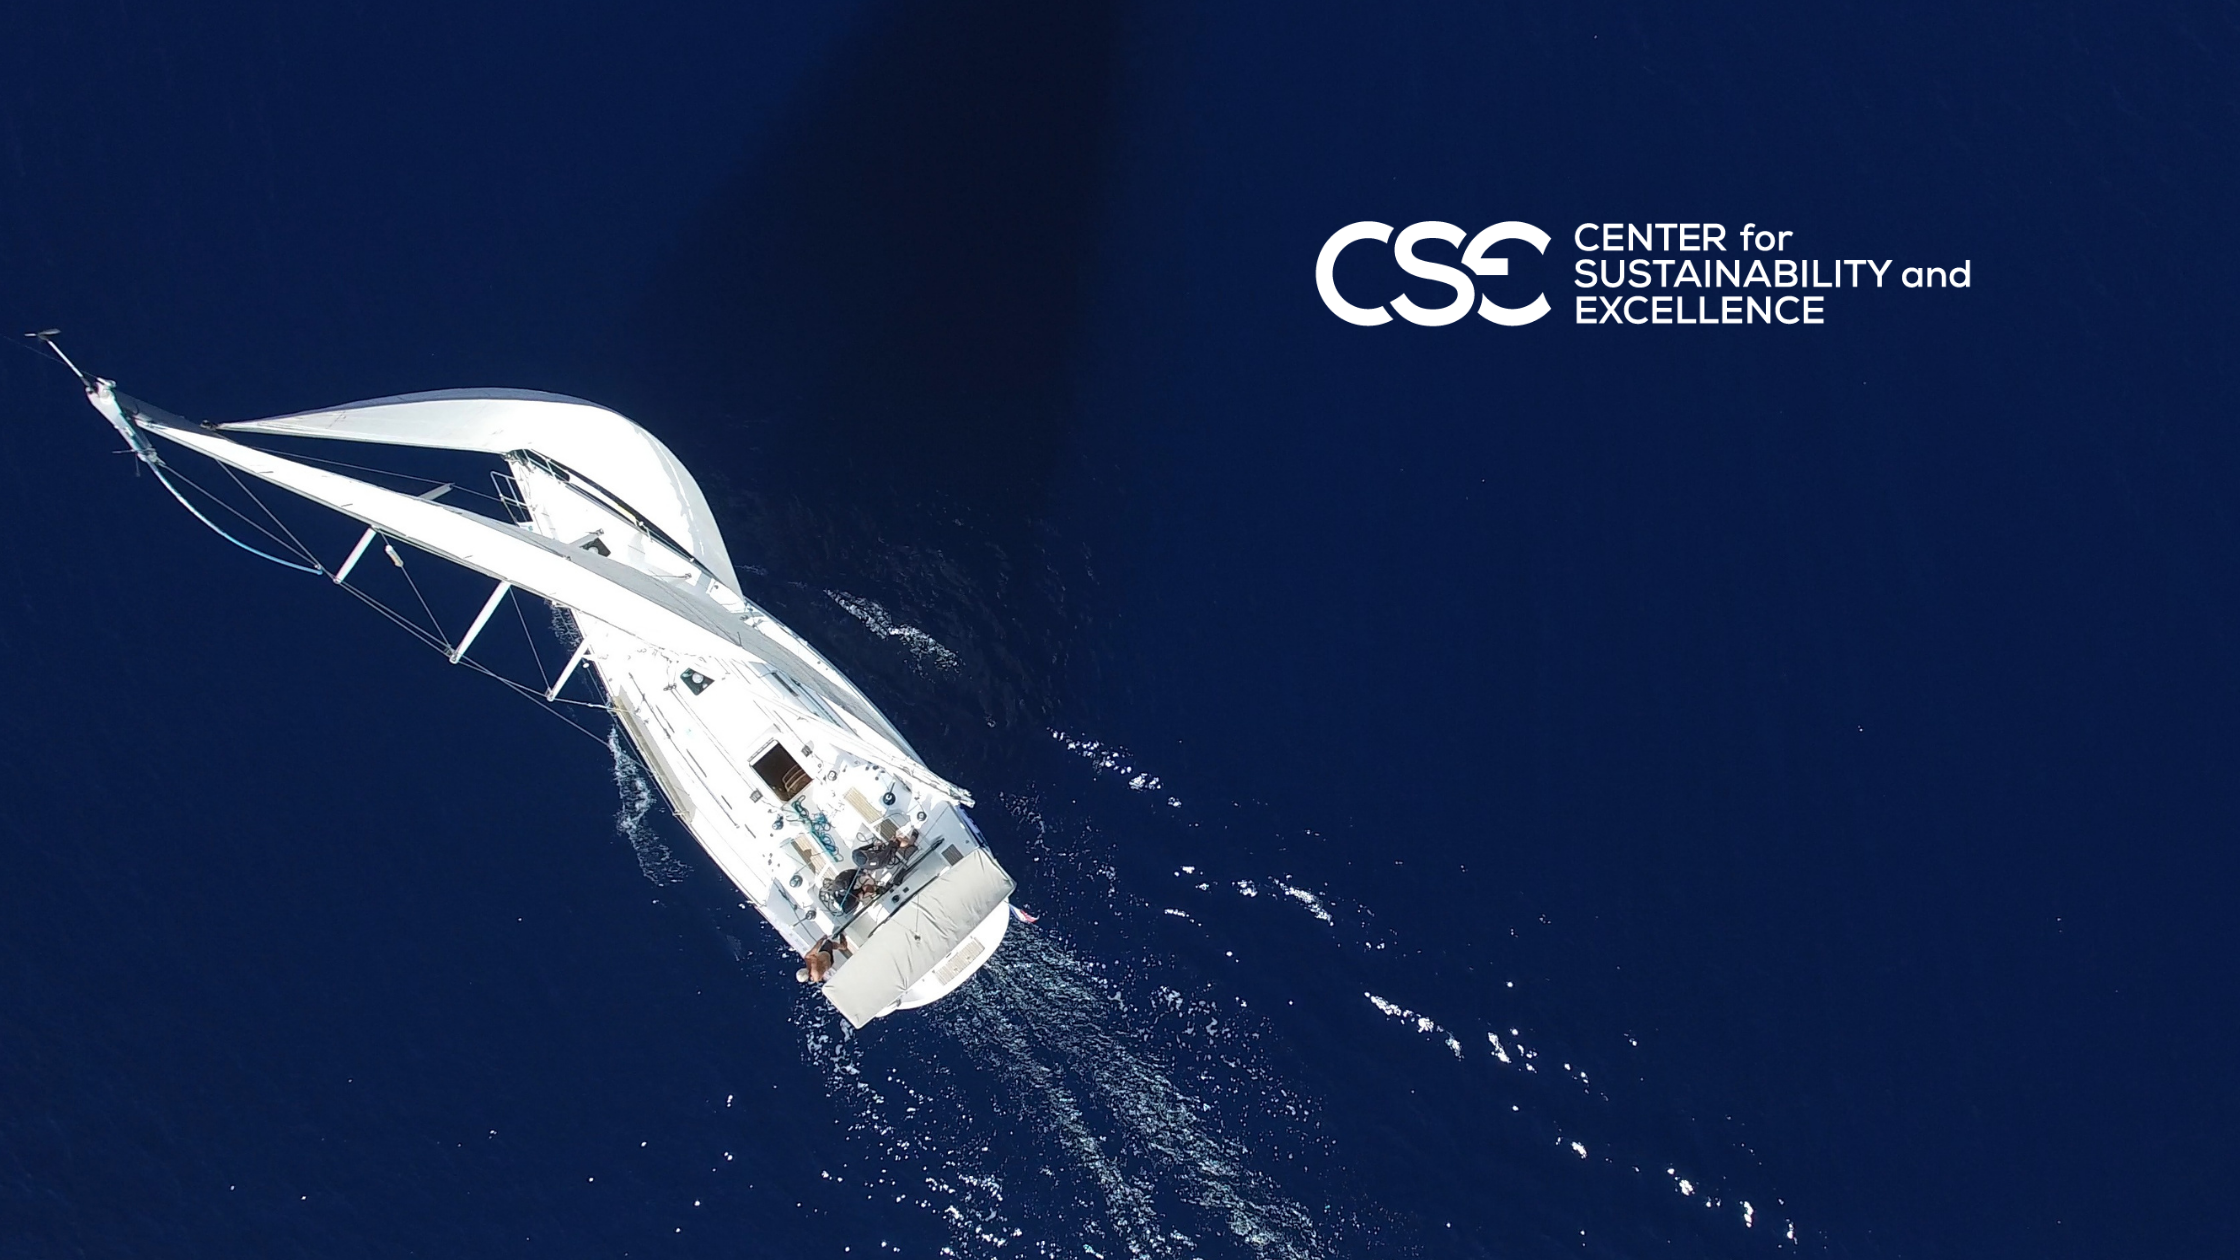 The importance of Responsible Communication of Sustainability for the Yachting industry